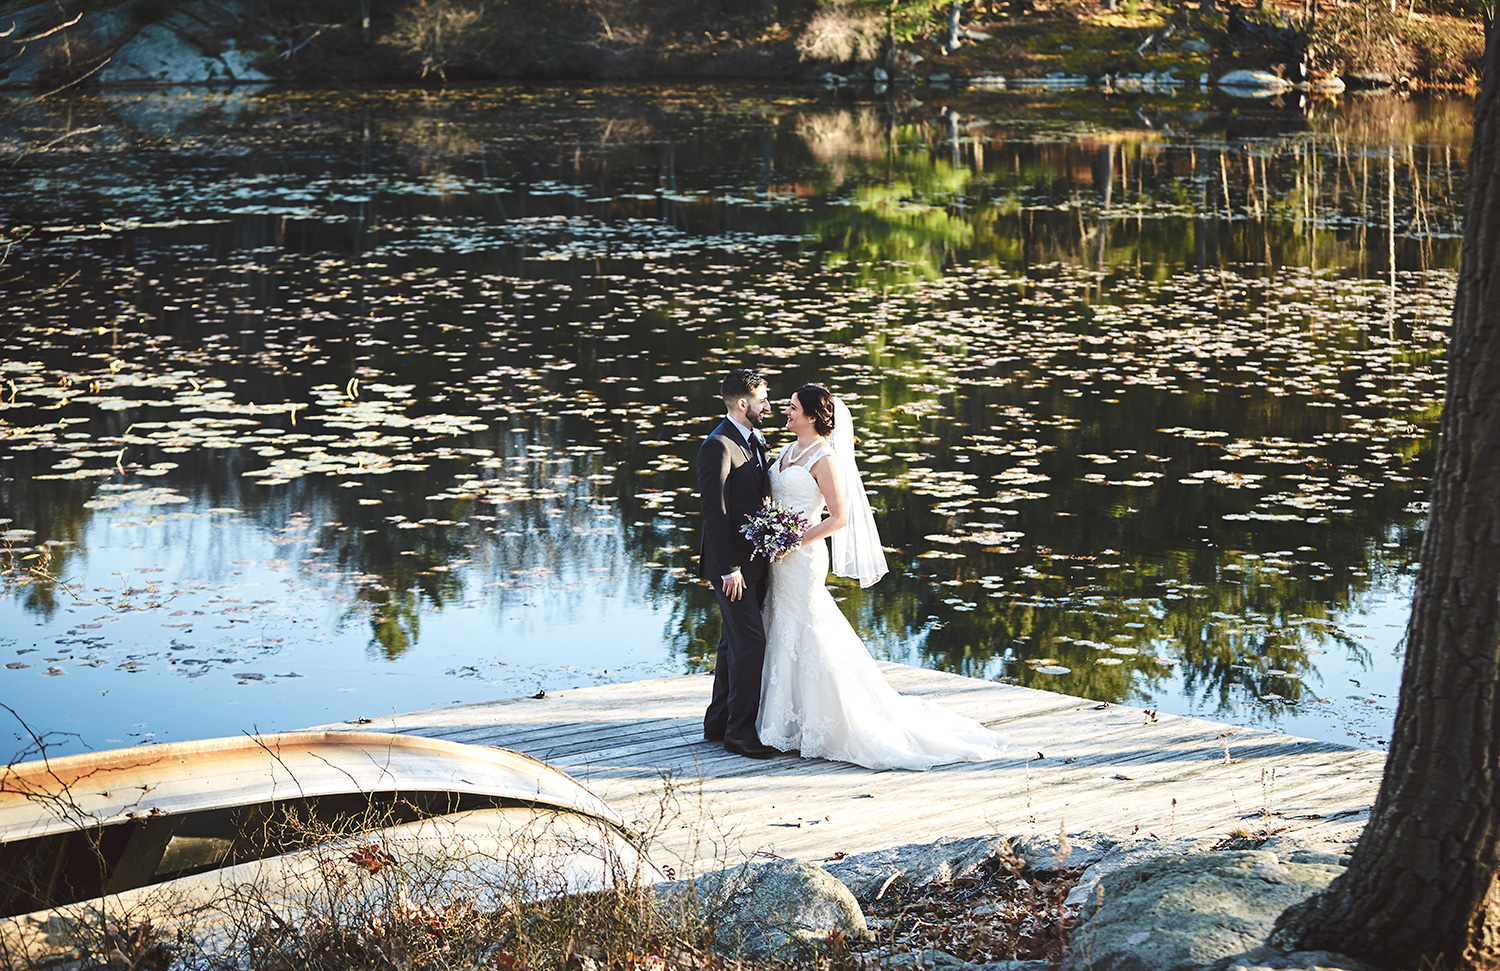 161119_ArrowParkLake&LodgeWedding_By_BriJohnsonWeddings_0088.jpg